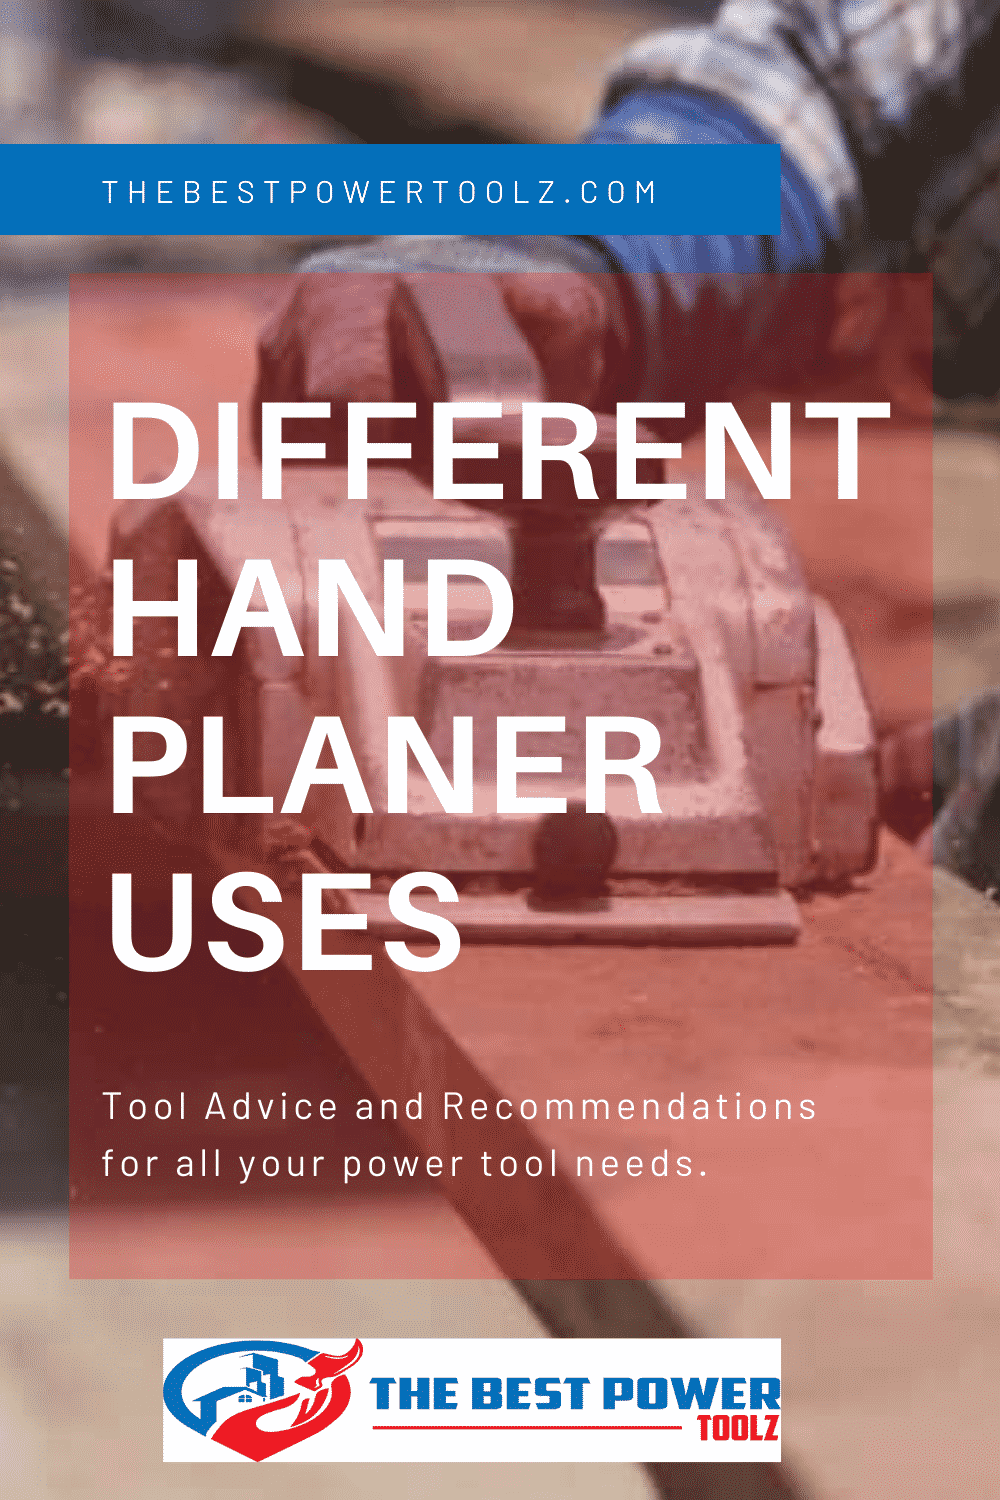 Different hand planer uses